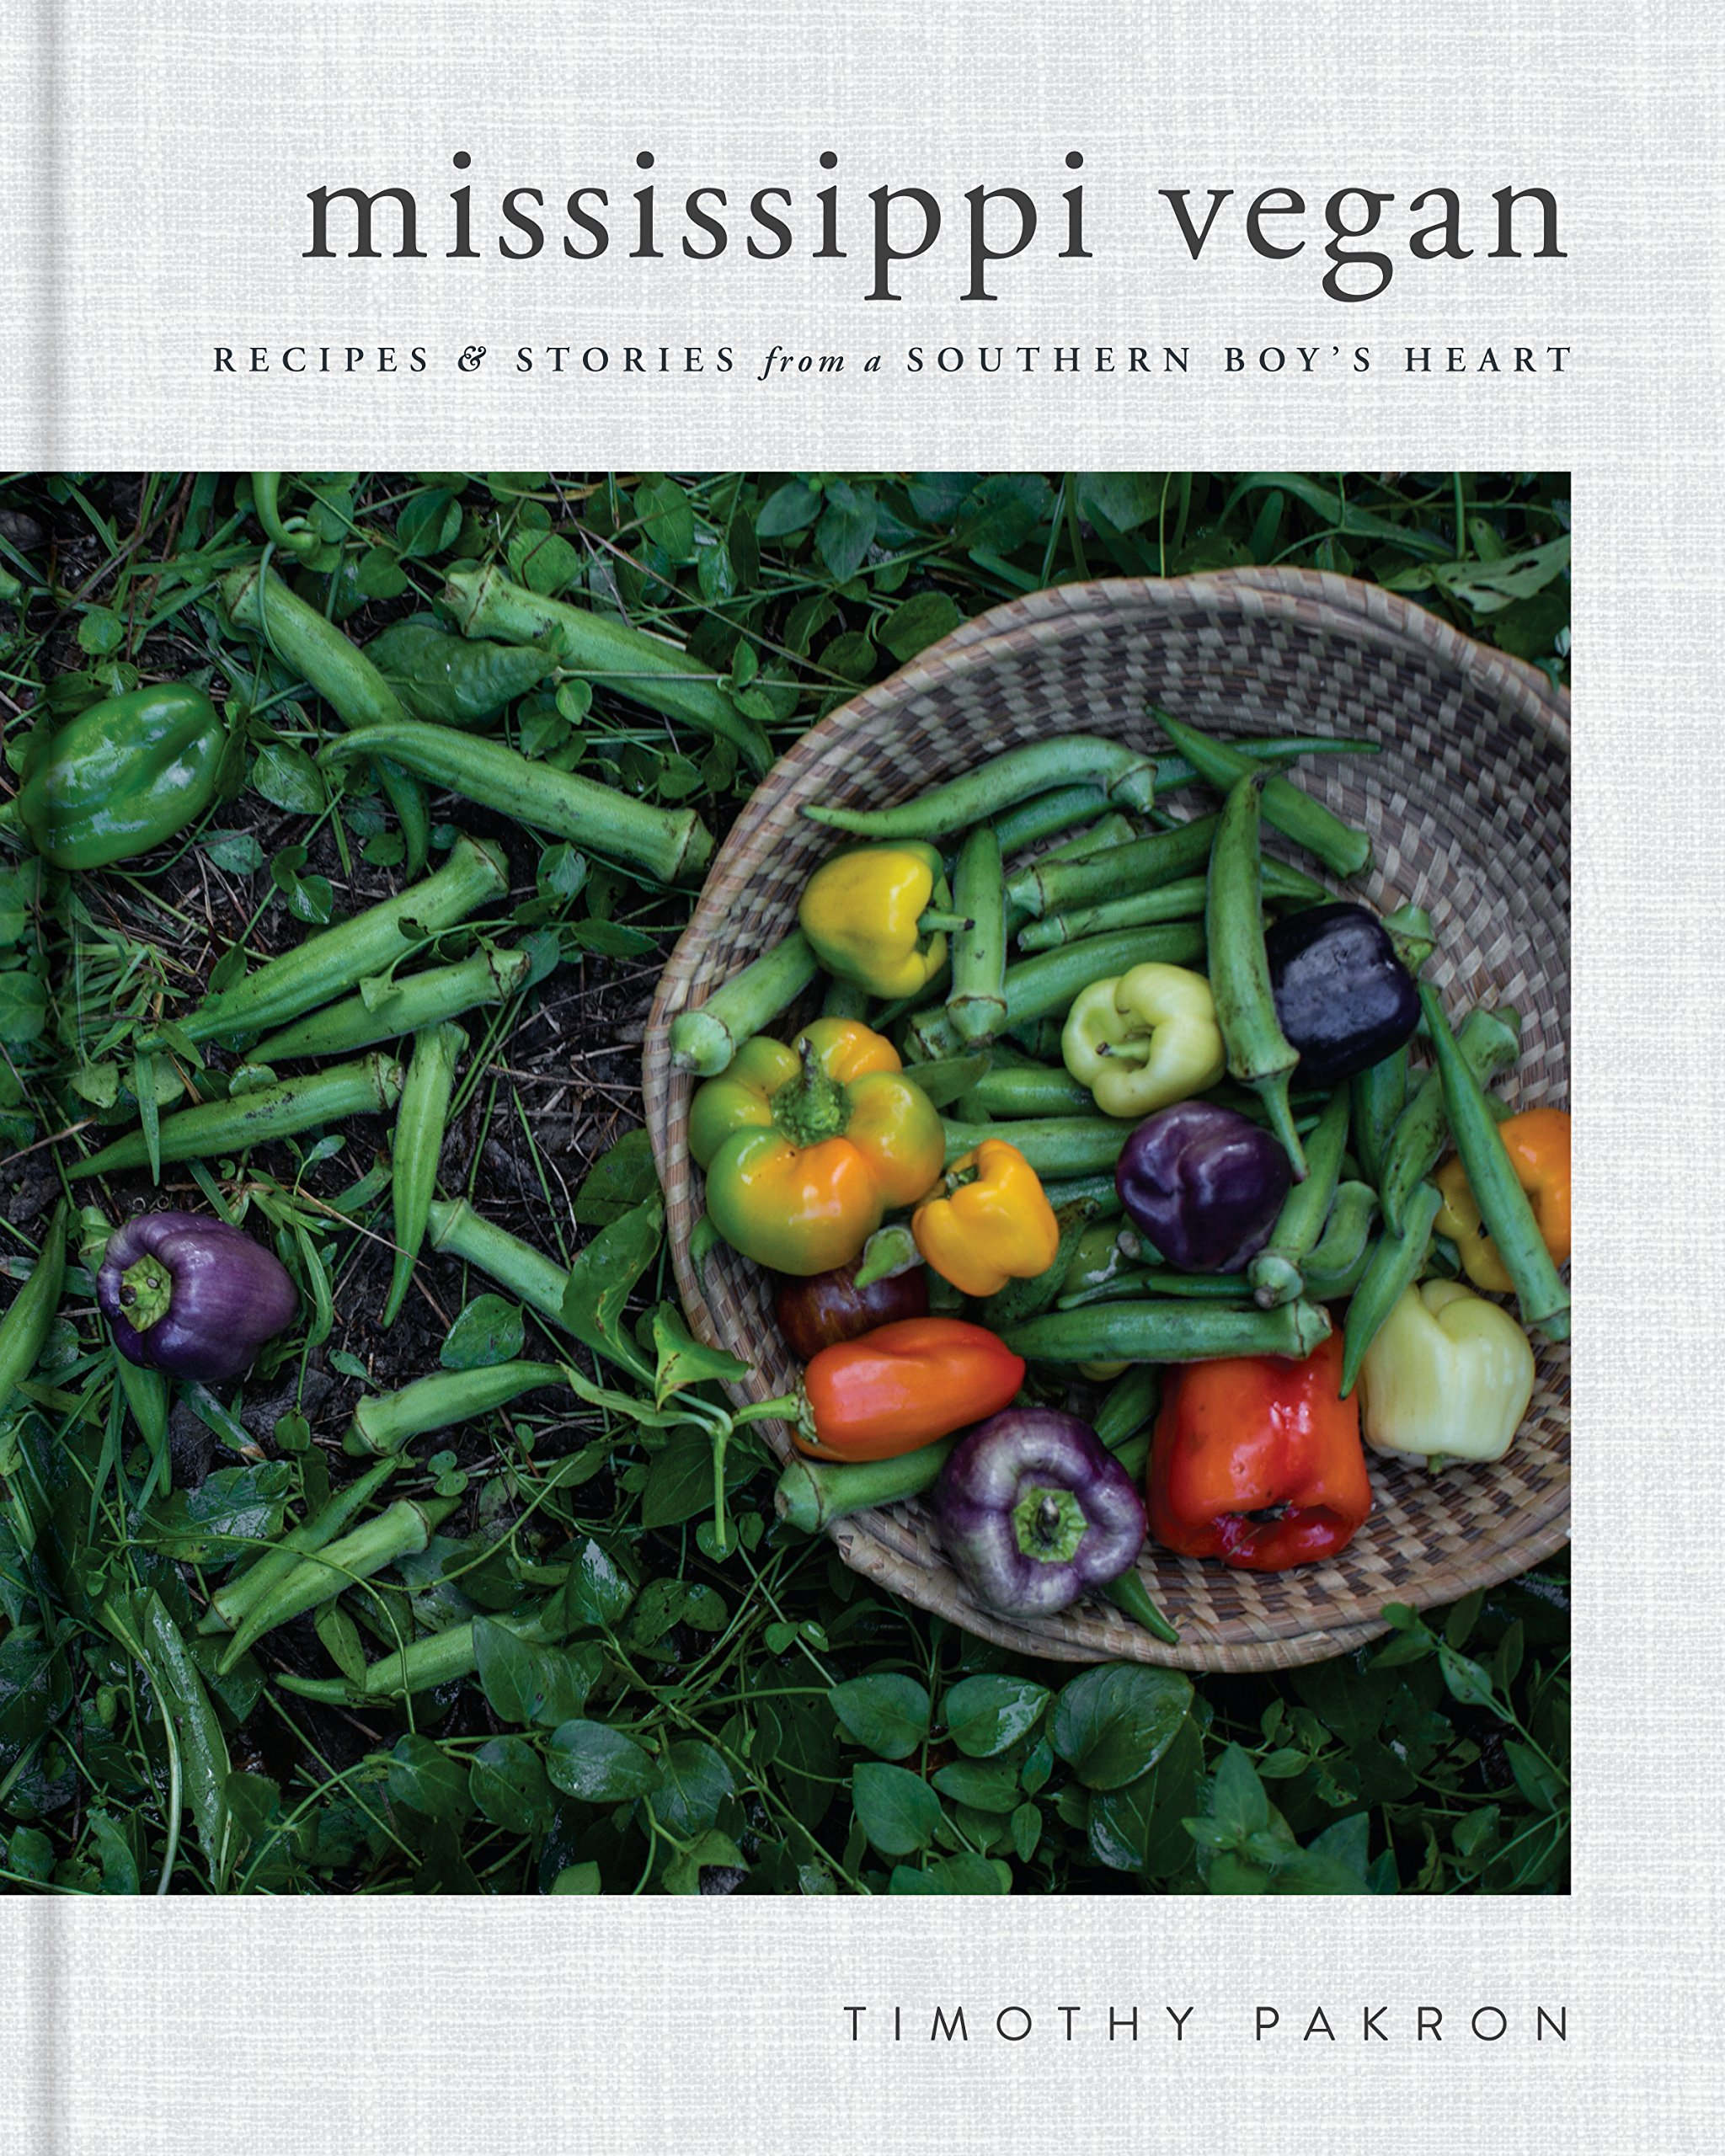 Mississippi Vegan: Recipes and Stories from a Southern Boy's Heart by Avery